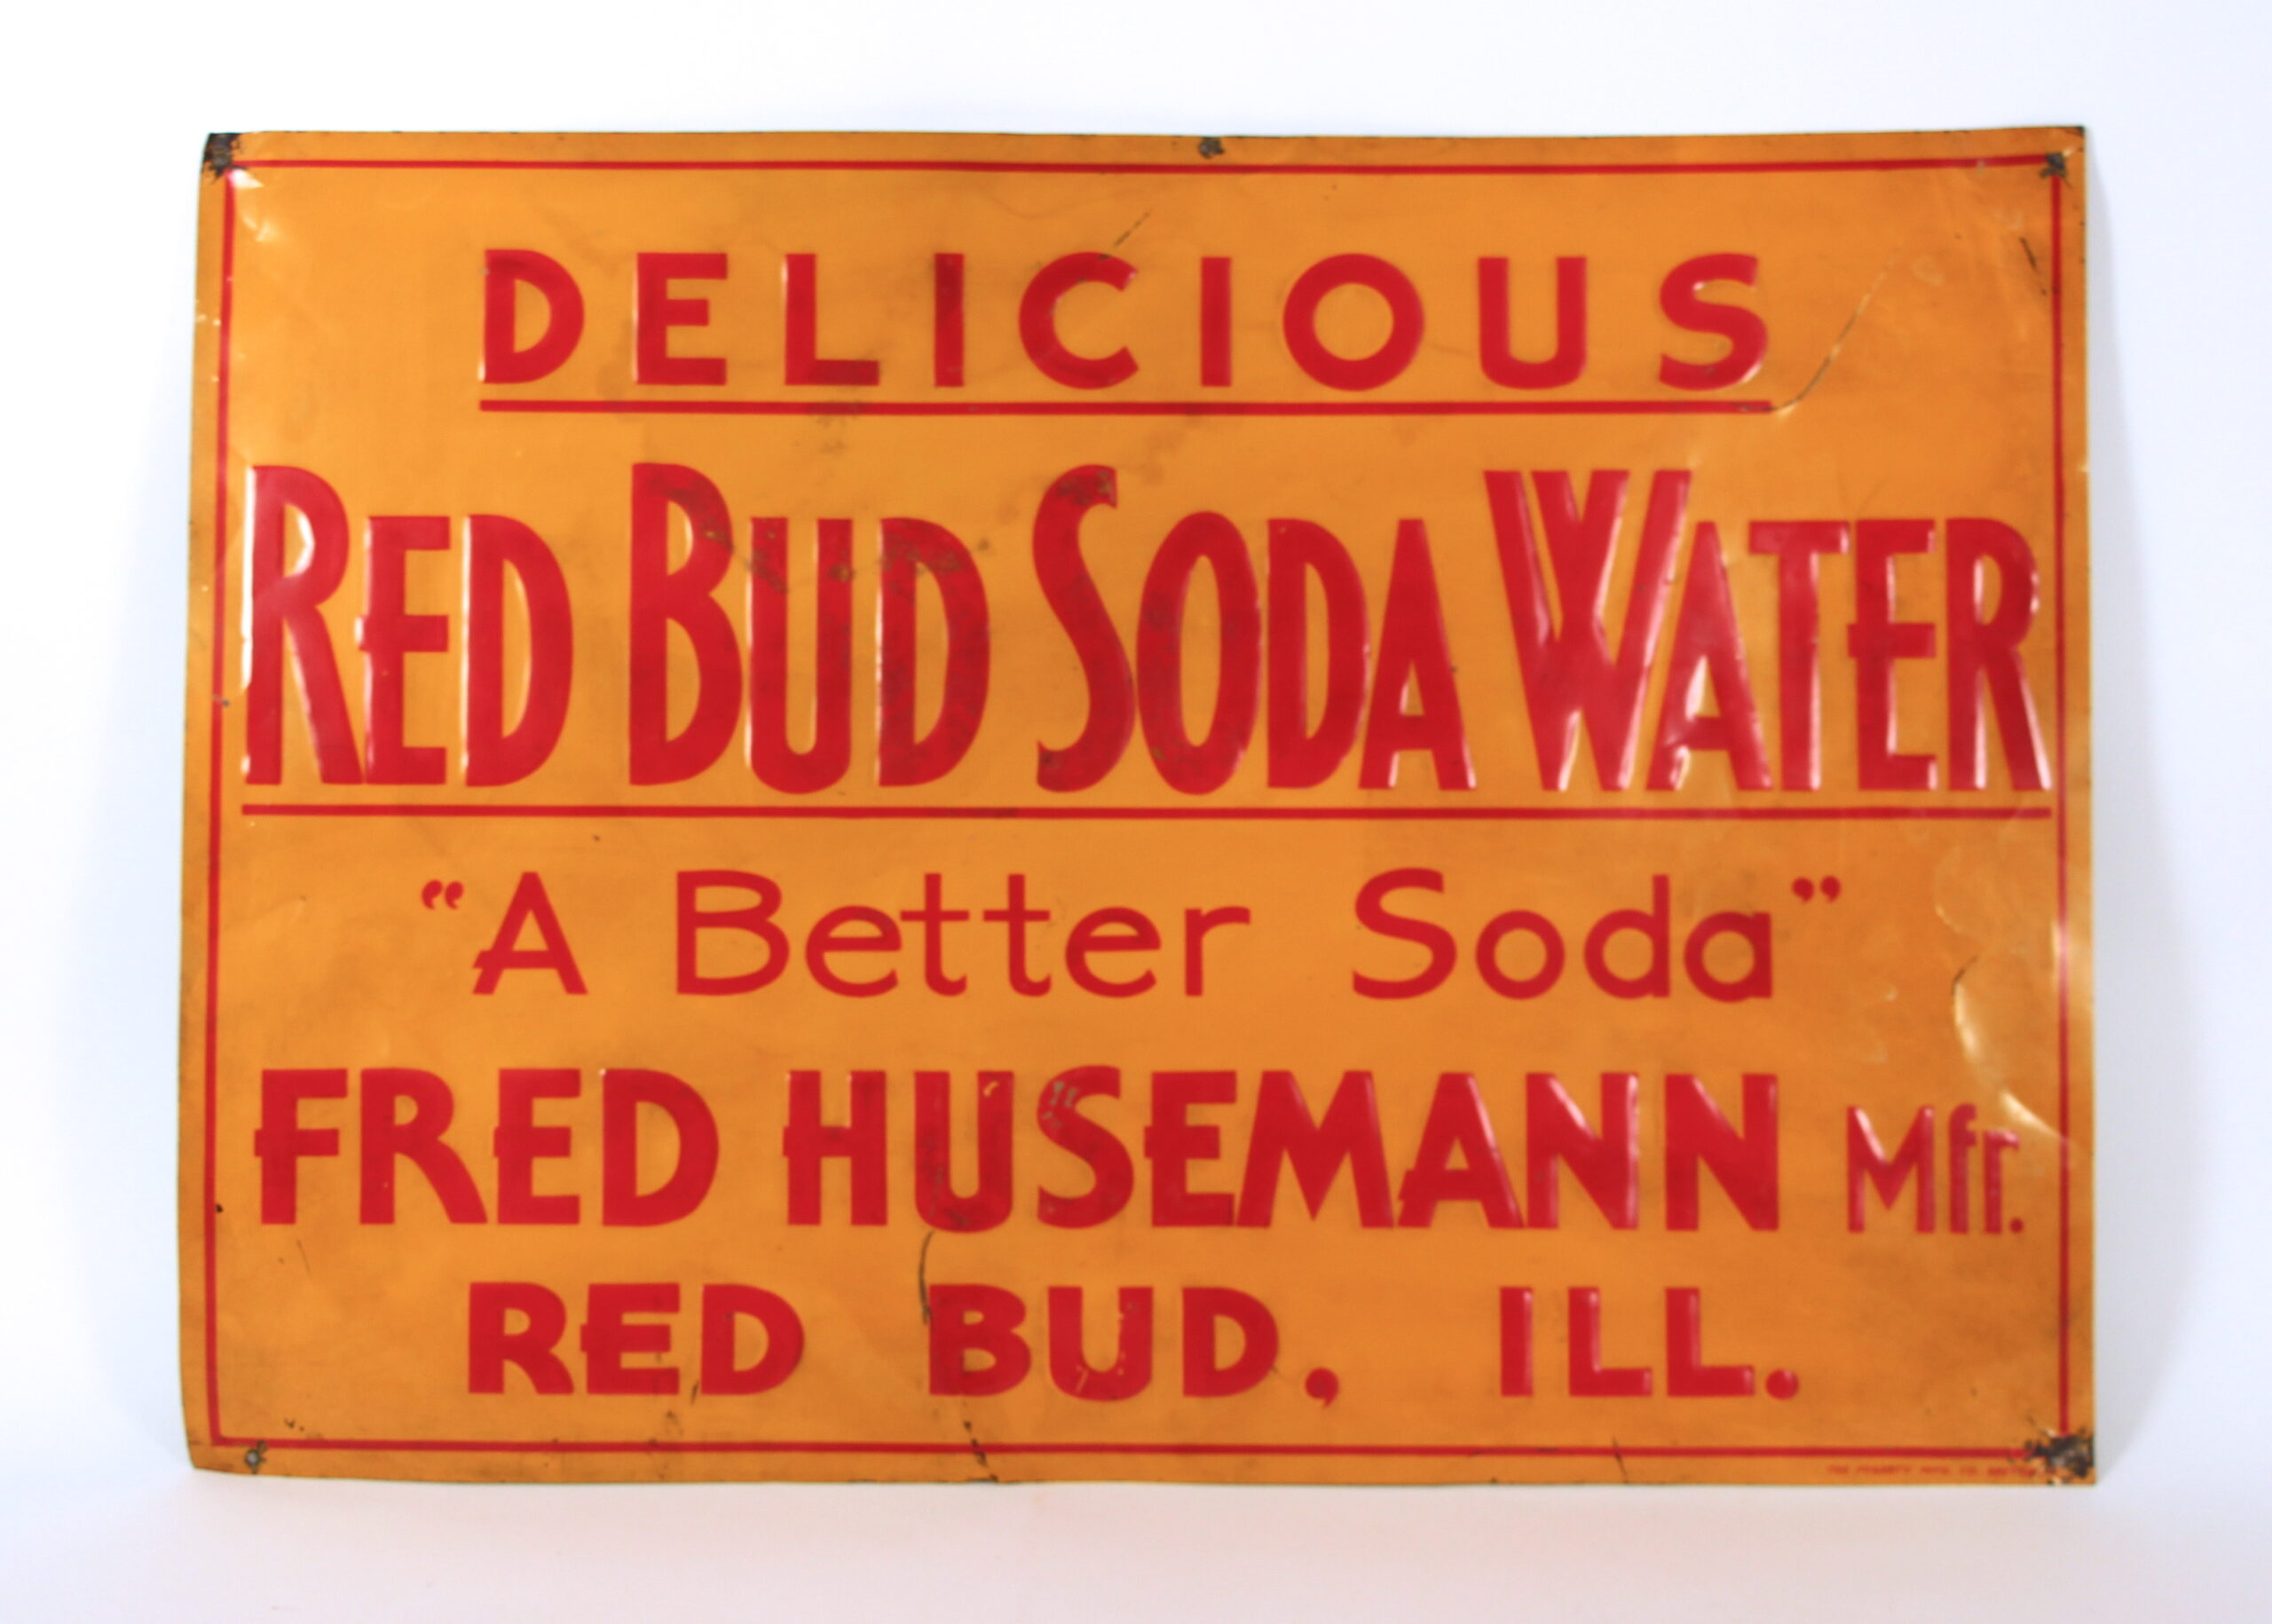 Red Bud Soda Water Tin Sign, Fred Husemann, Red Bud, IL. 1930's